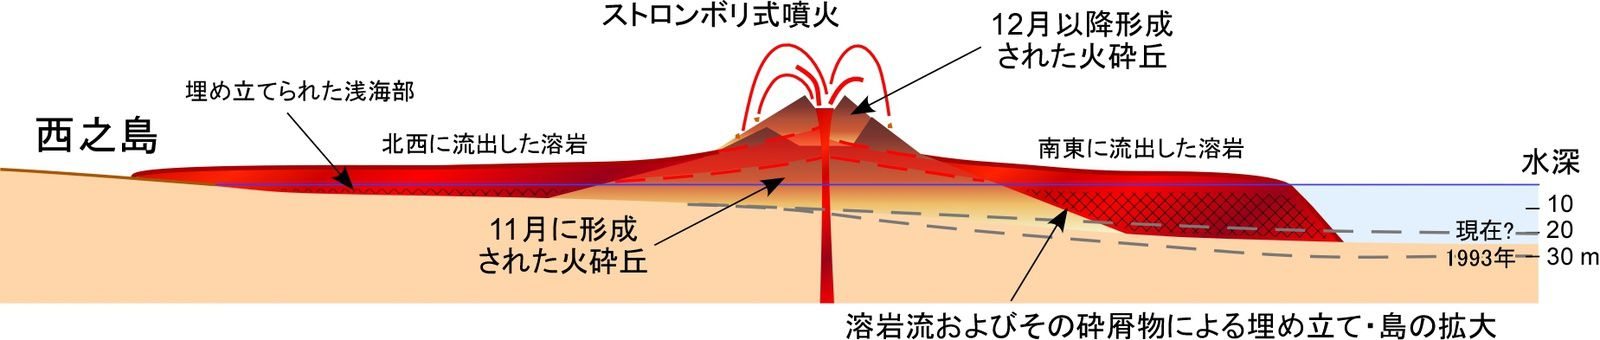 Nishinoshima - evolution and distribution of lava flows - On the cross section,  you can see an accumulation of the lava flows to the east (right side of the diagram) - doc eri.u-tokyo